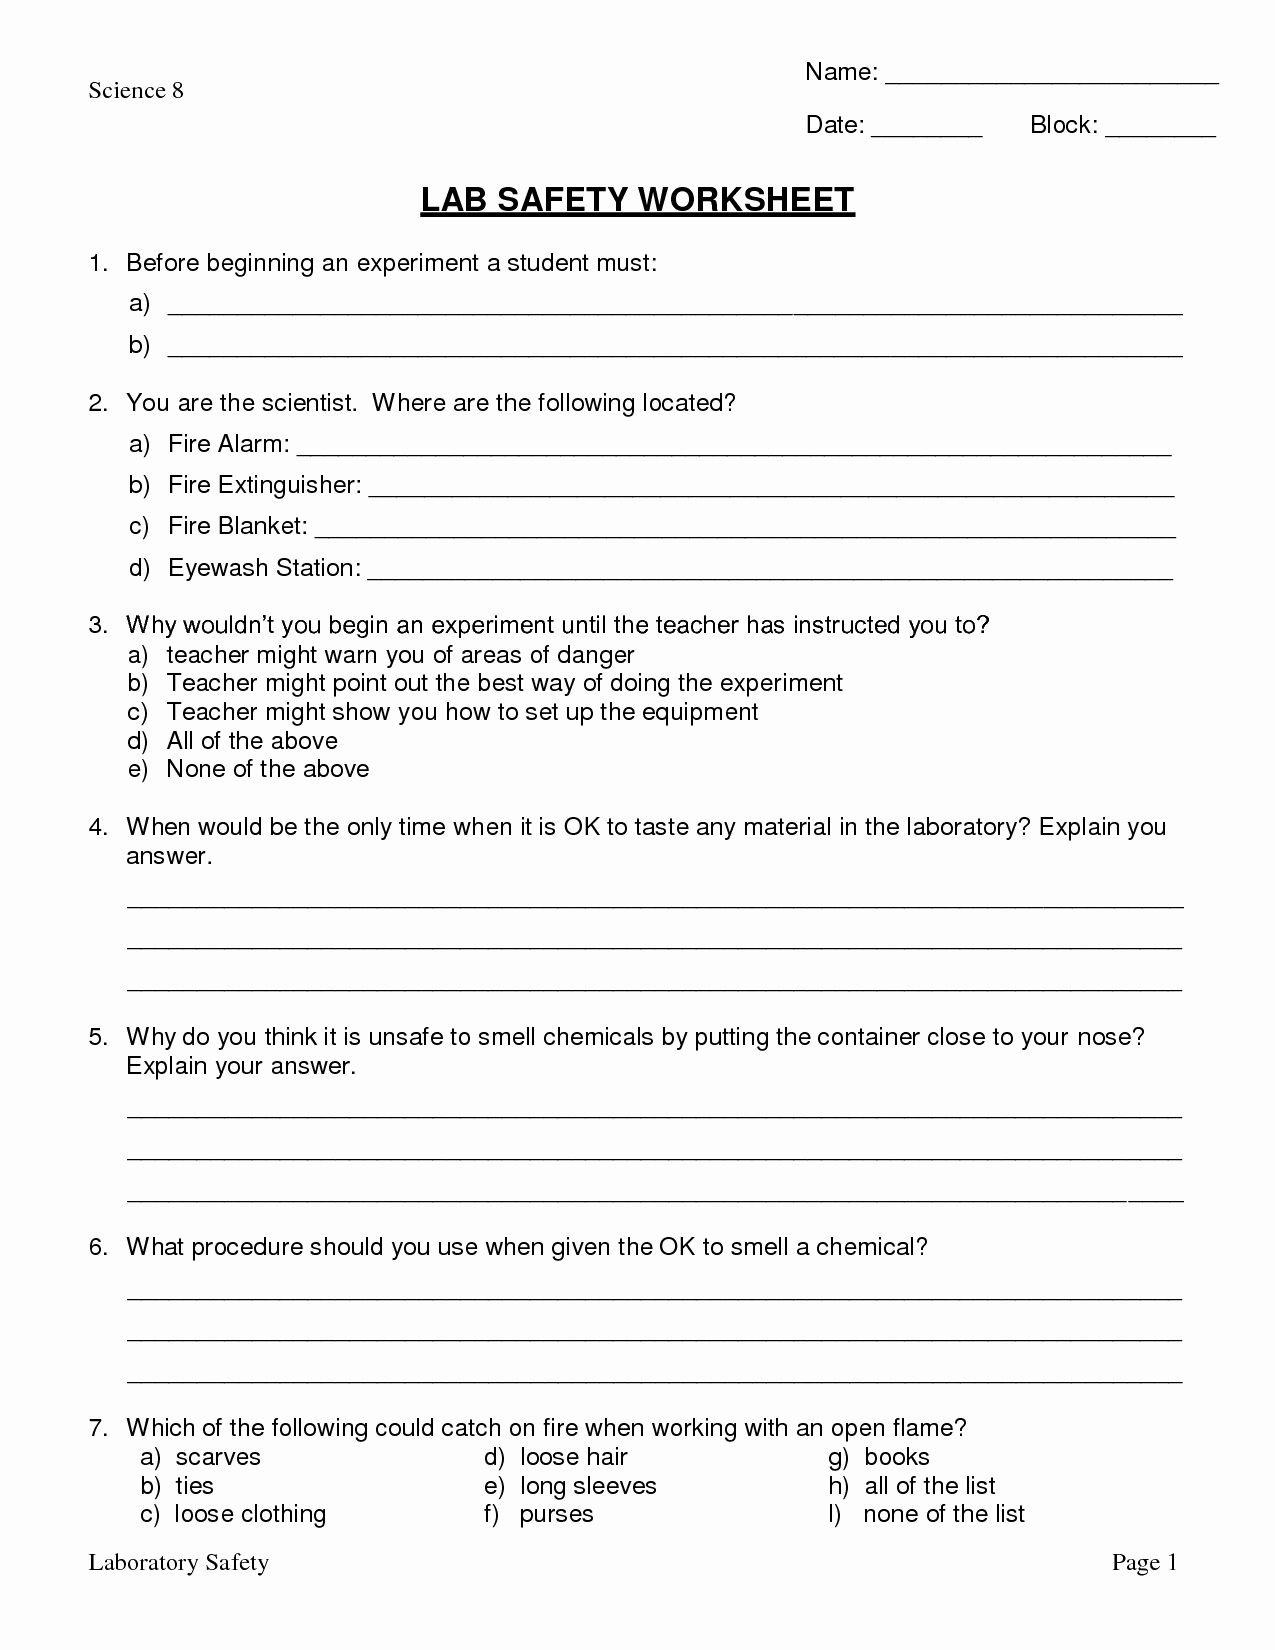 50 Lab Safety Symbols Worksheet In With Images